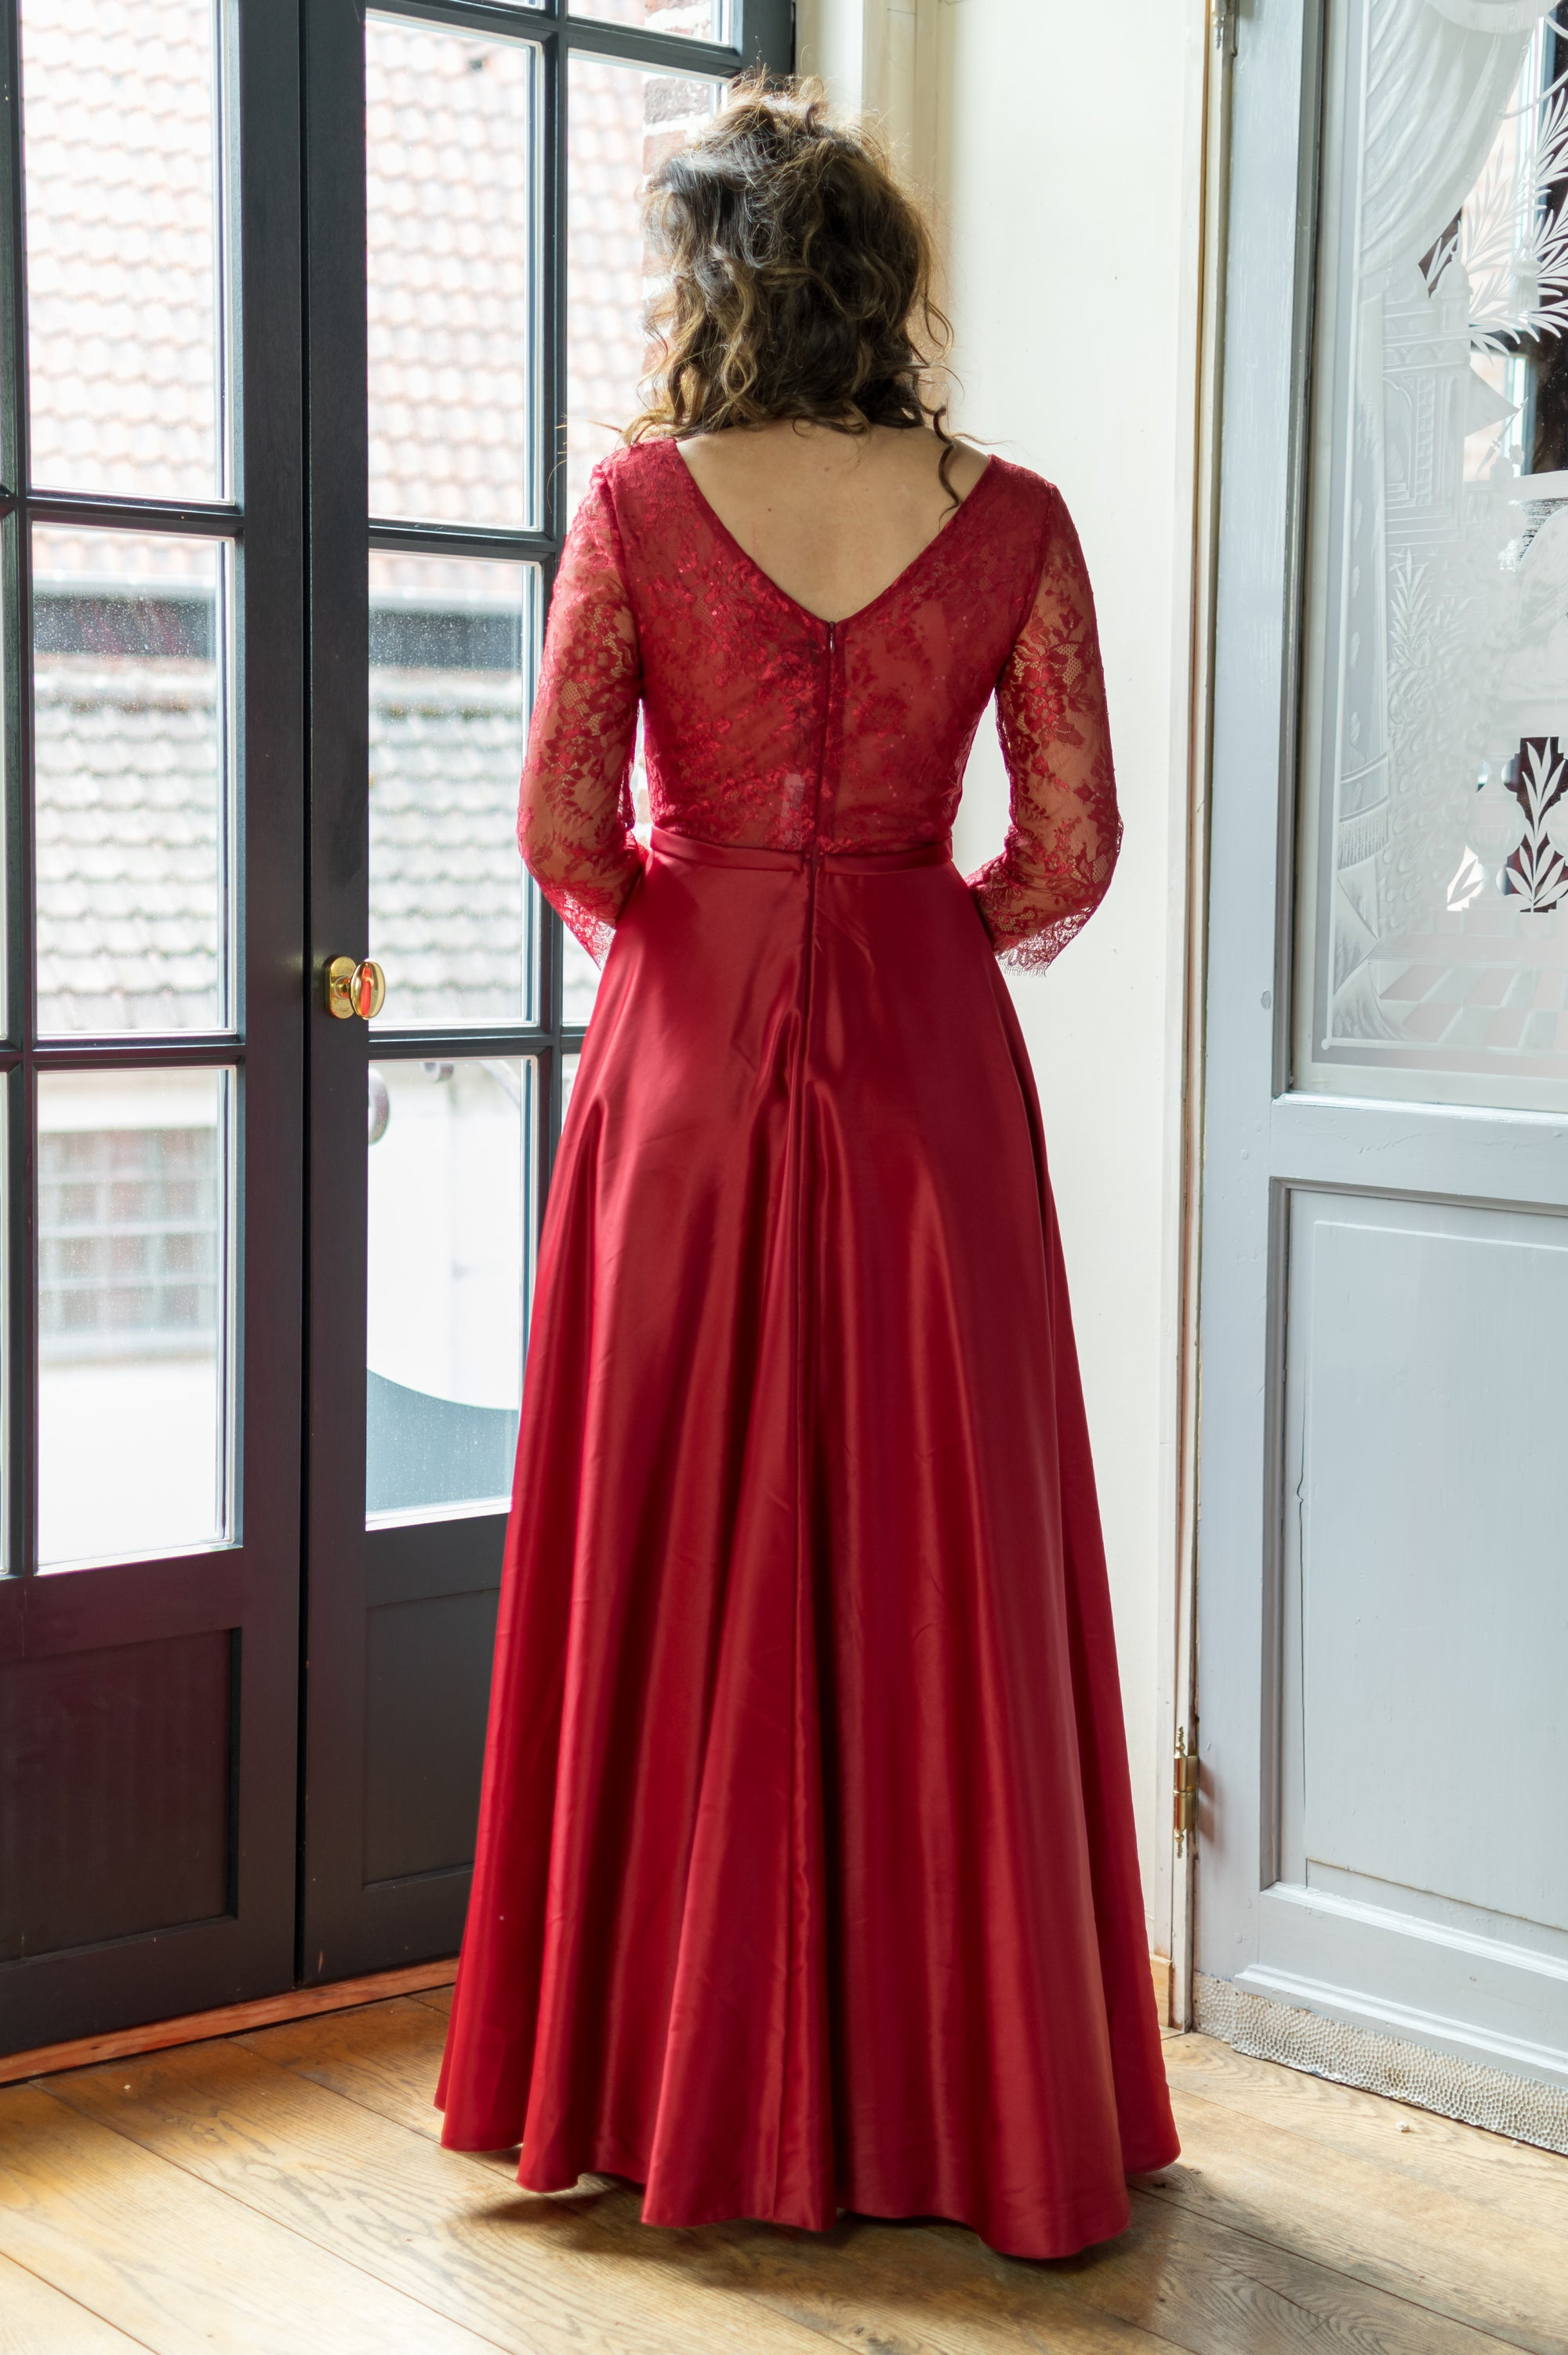 Belle Of The Ball Dress - Cerise